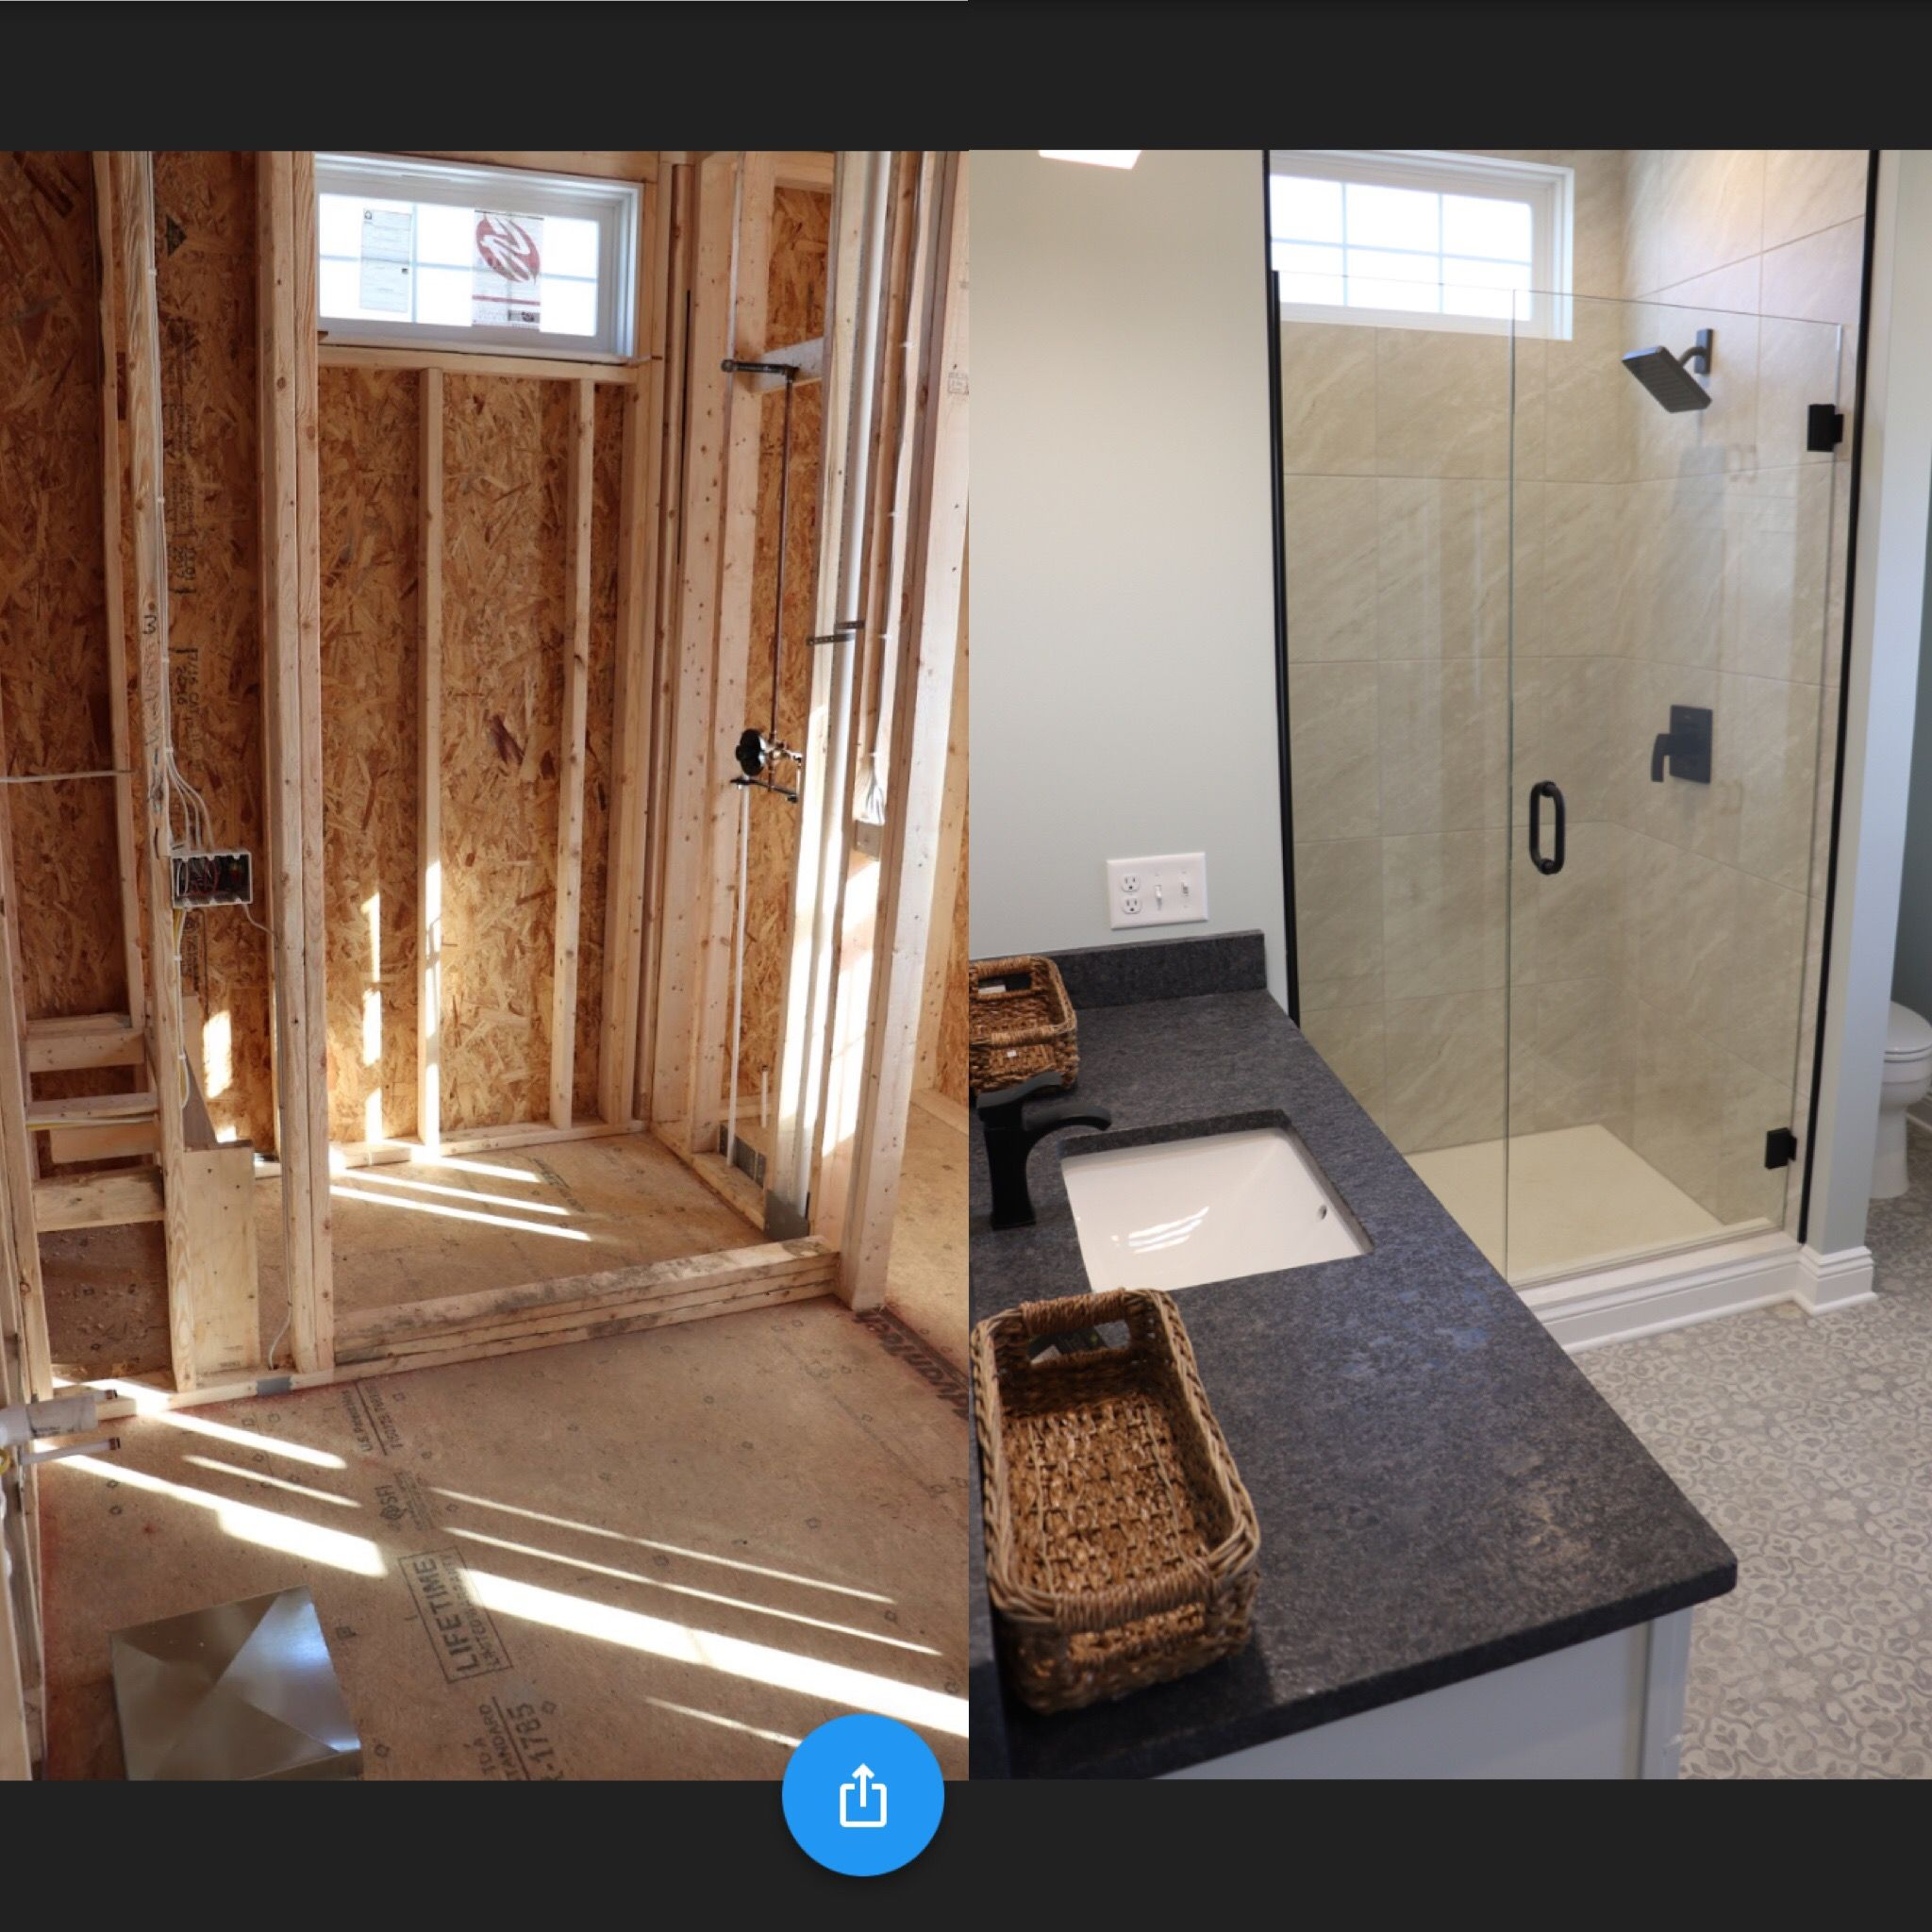 Let S Make Plans For A New Bathroom By J J Plumbing Heating Cooling Call Today For A Free Consultation 330 68 Bathroom Heating And Cooling Hvac Company